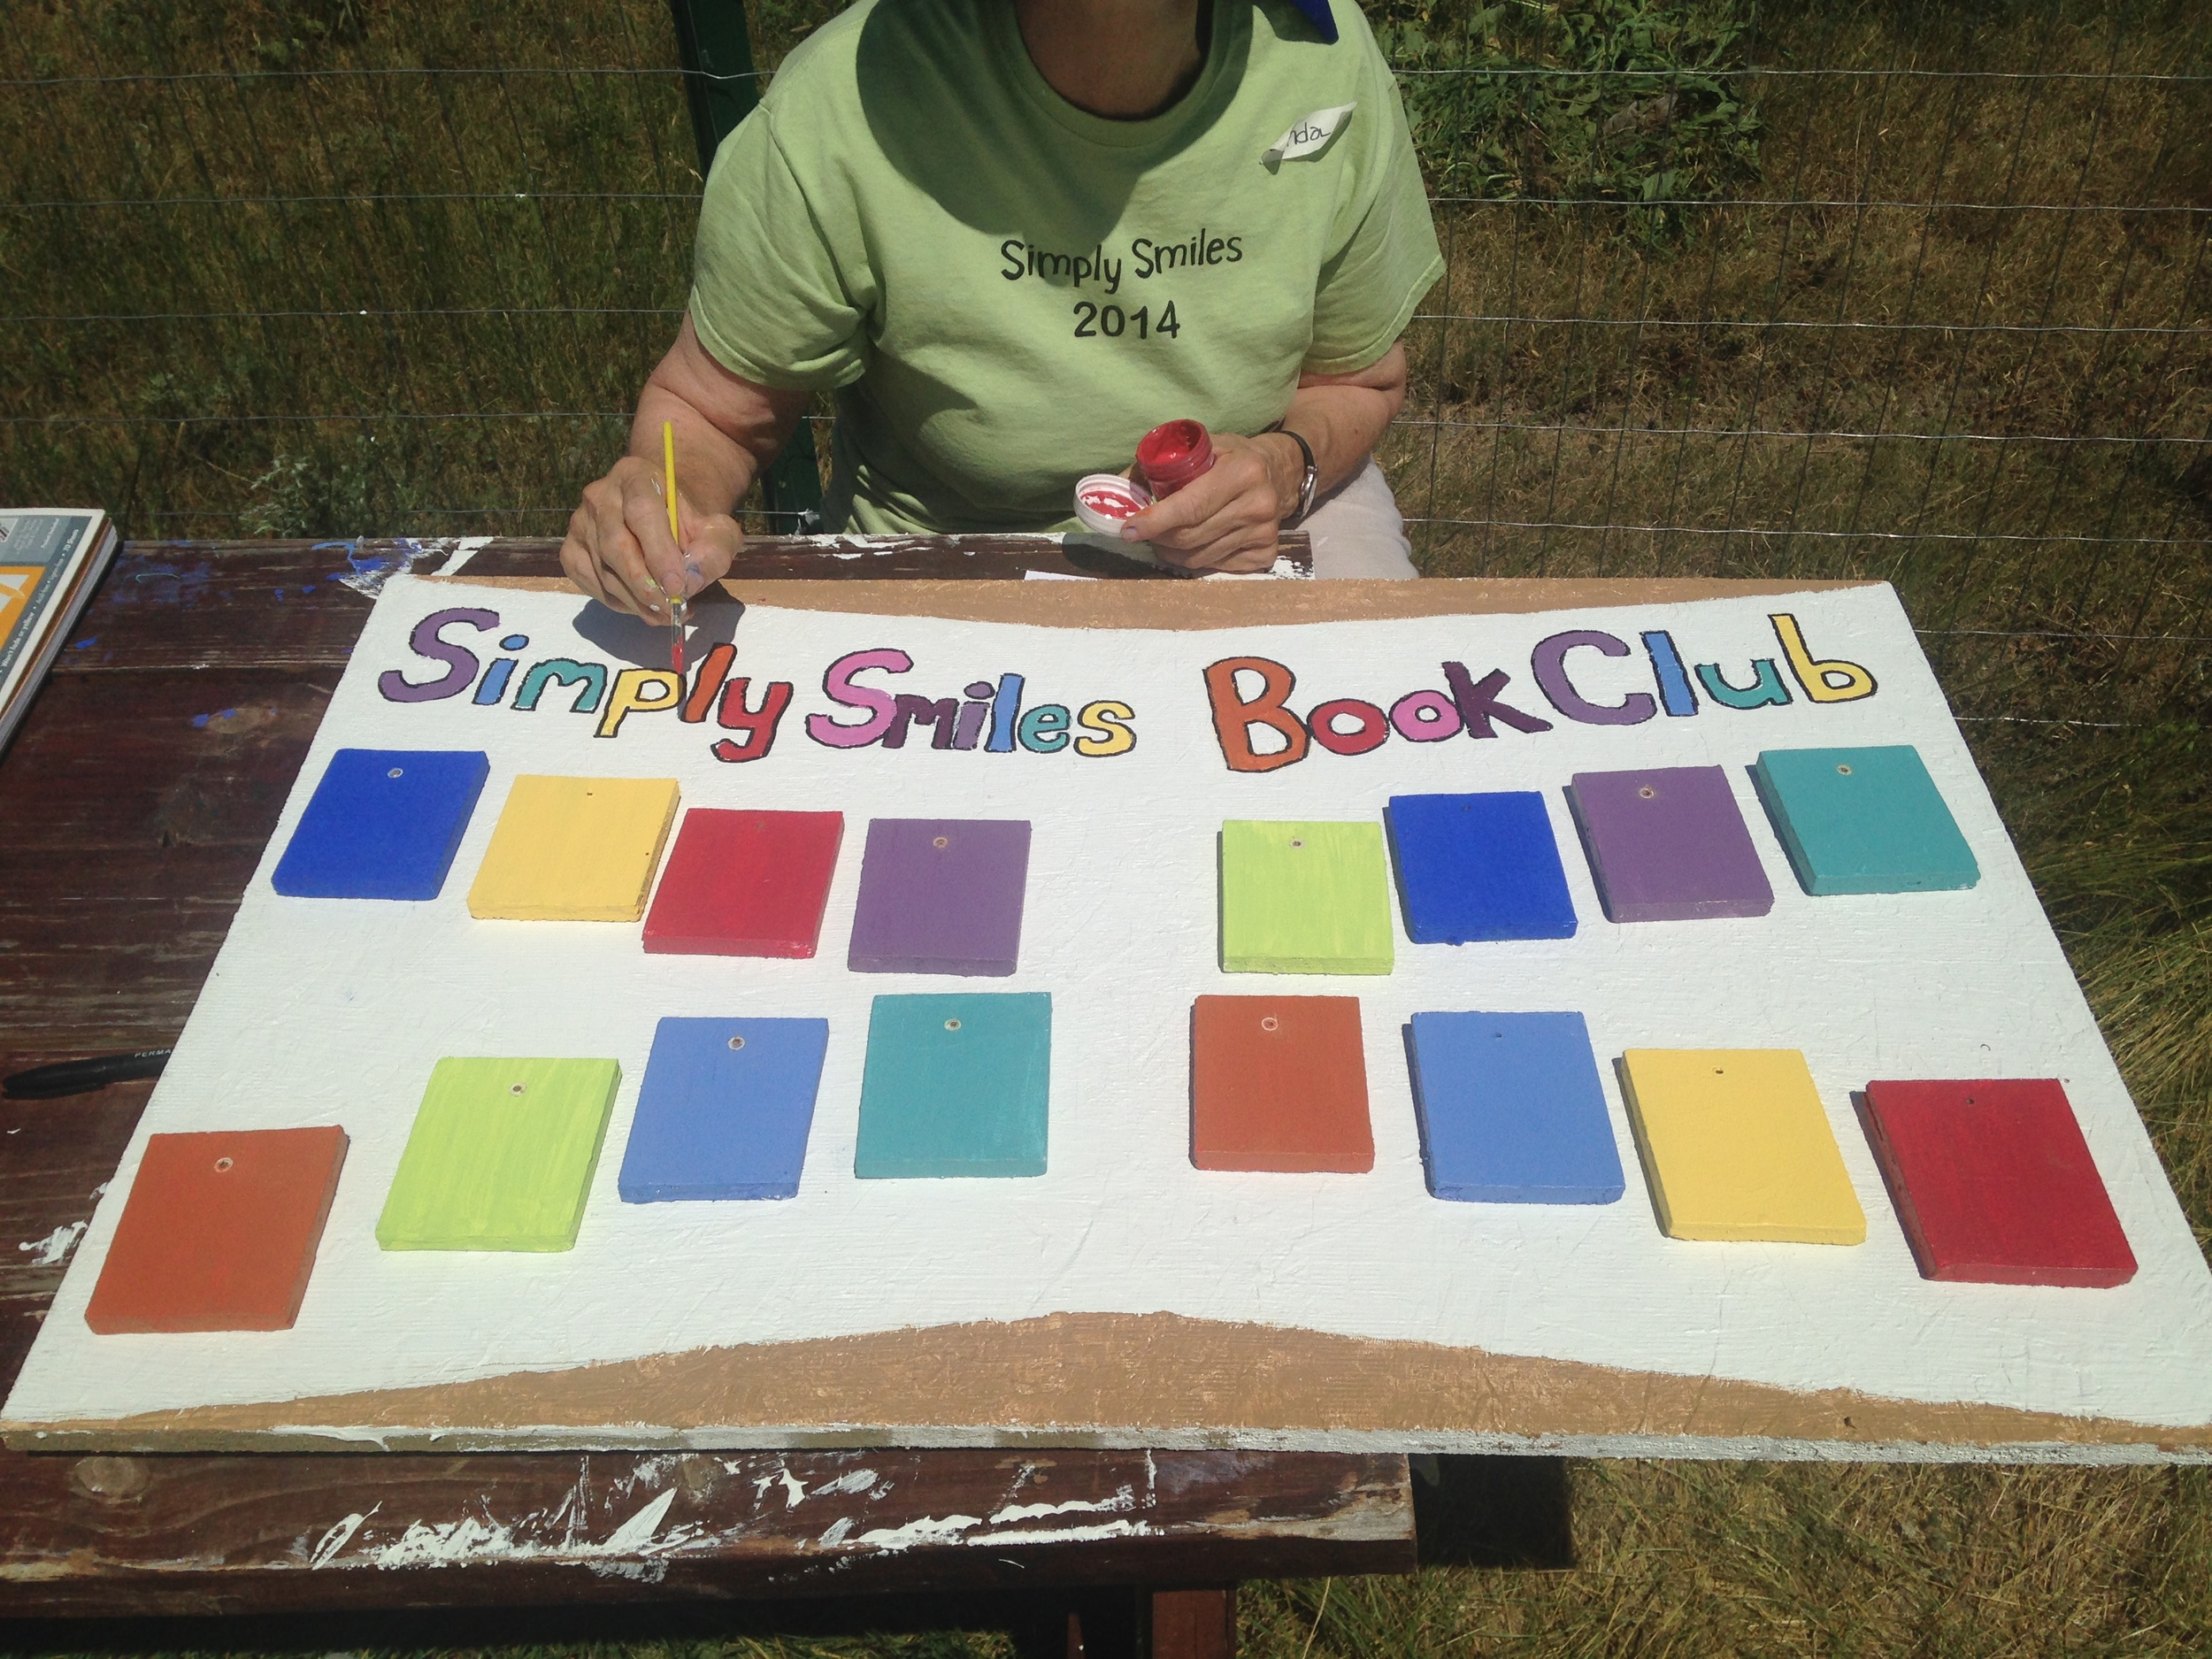 A new sign is created to celebrate Book Club milestones! Each book completed will be marked on the Book Club board! (A.Gross, La Plant, July 2015)